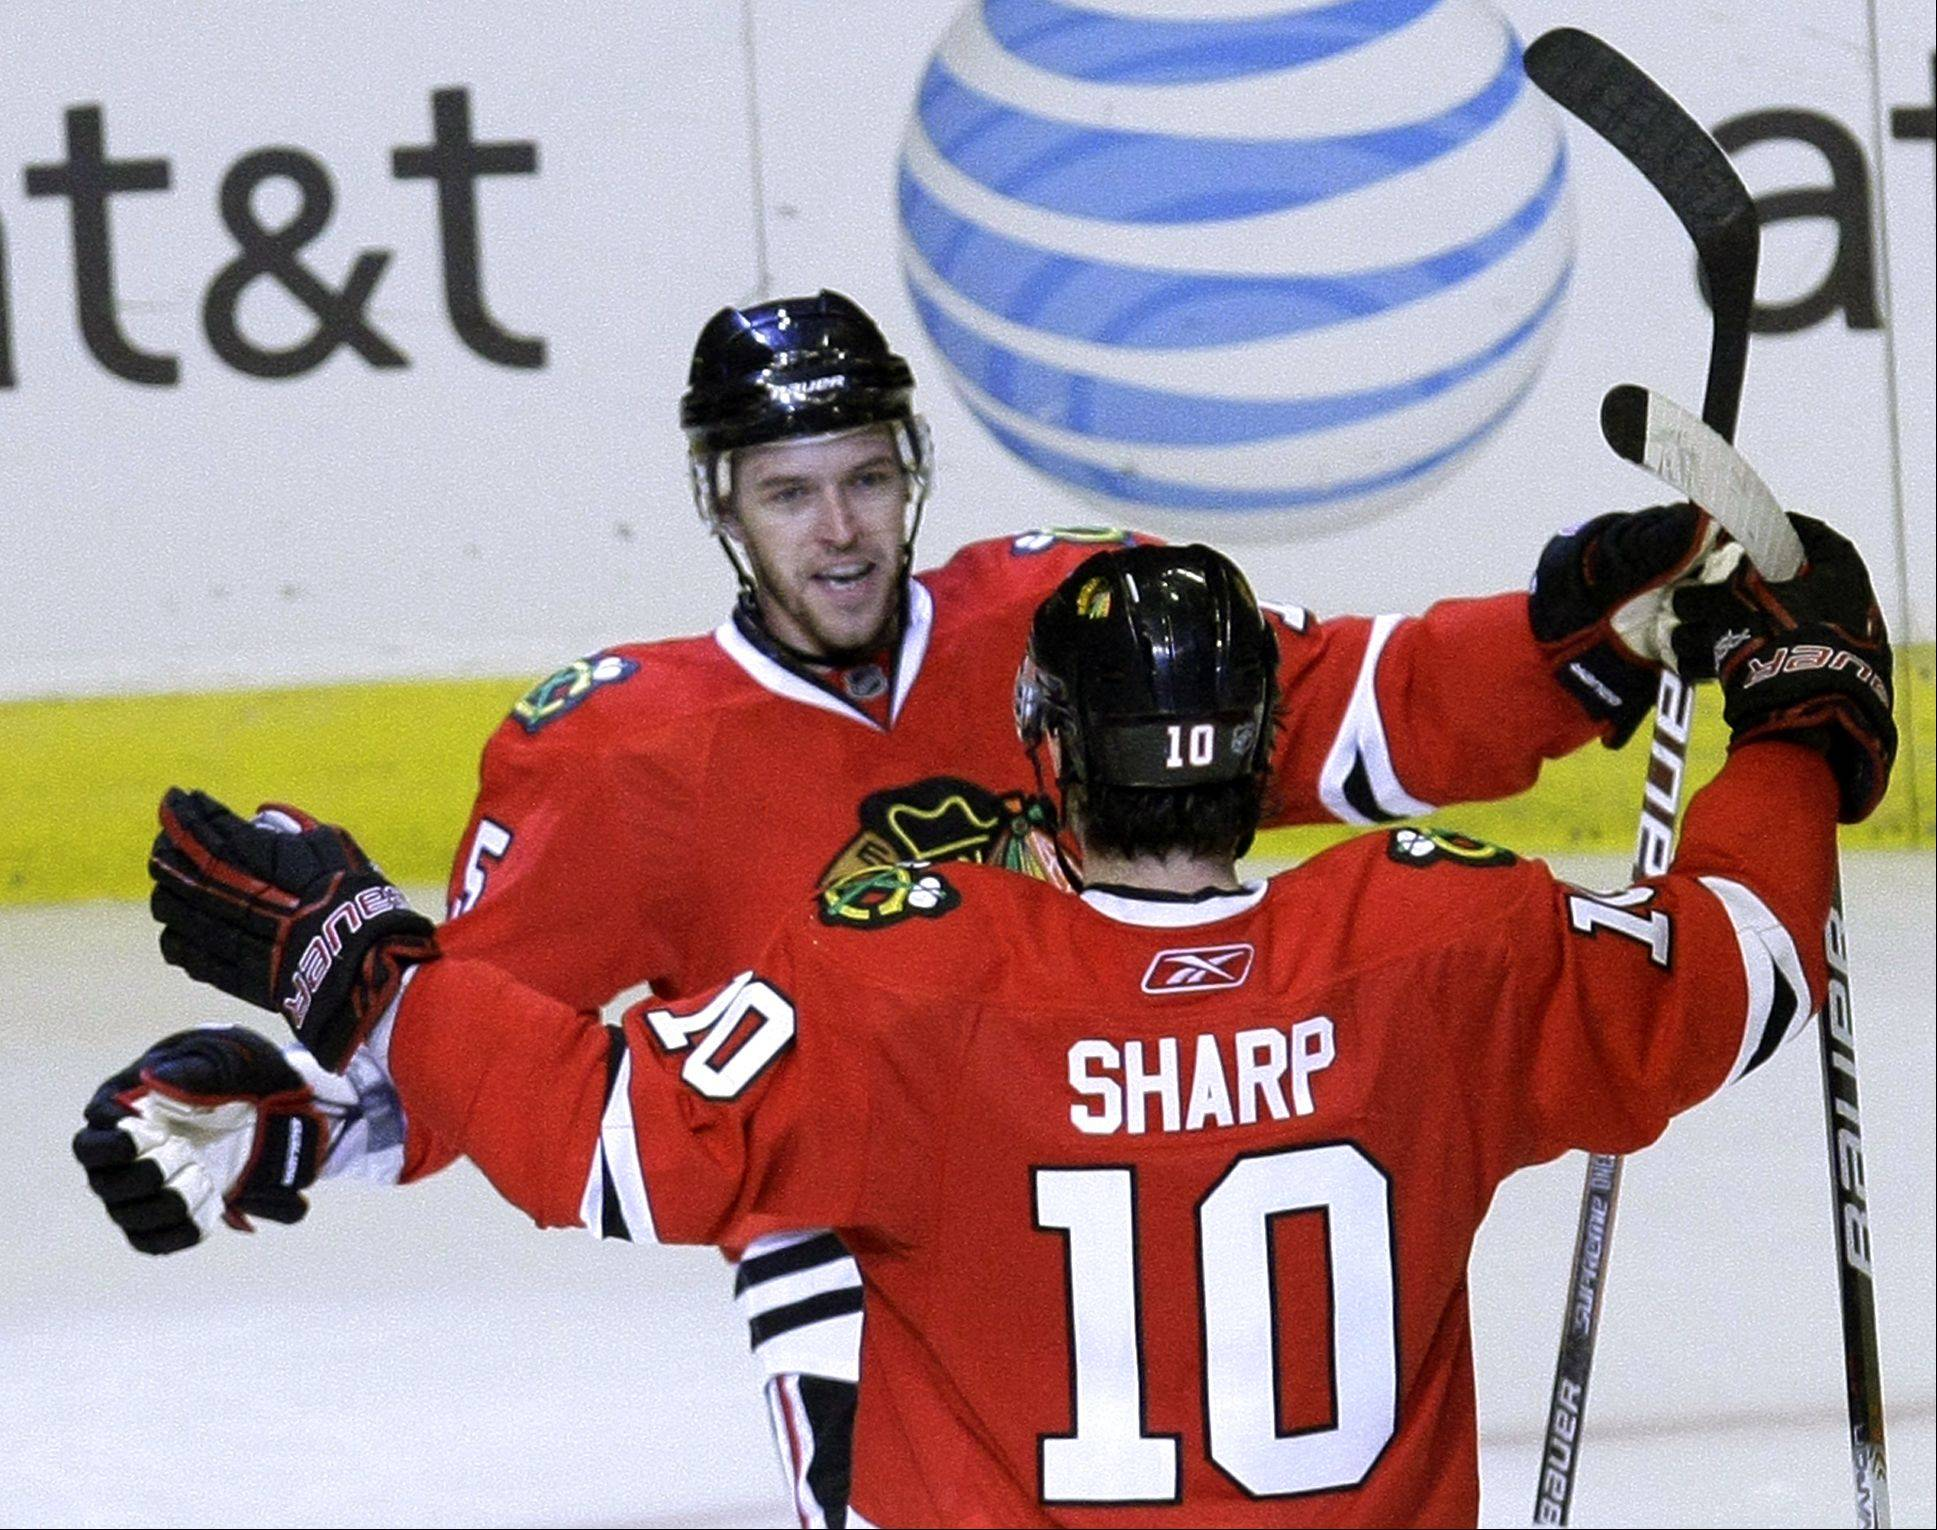 Patrick Sharp will be an Olympian in Russia next month -- one of 10 Blackhawks going to the Olympics.